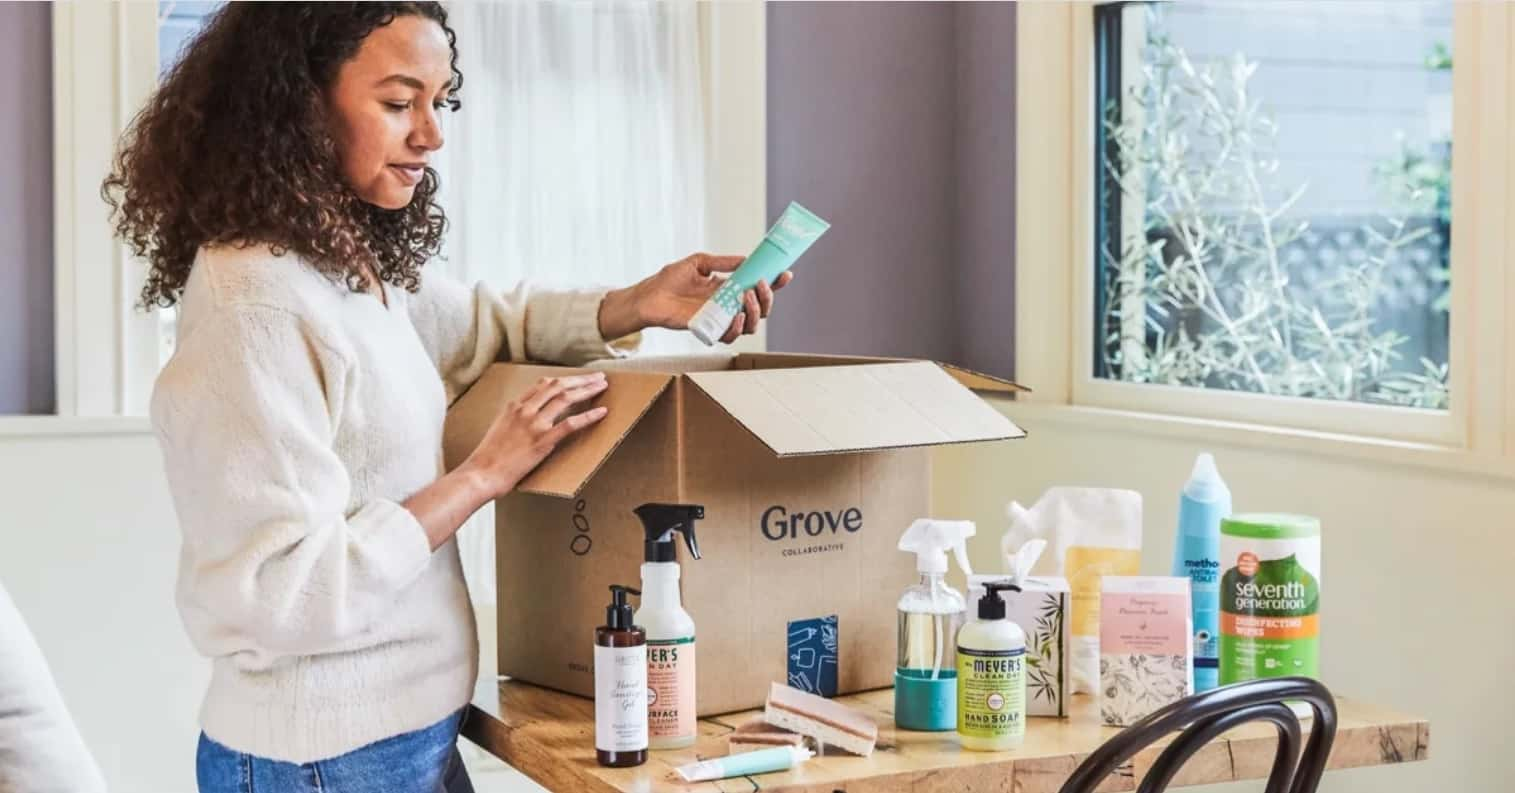 woman unboxing box from grove collaborative